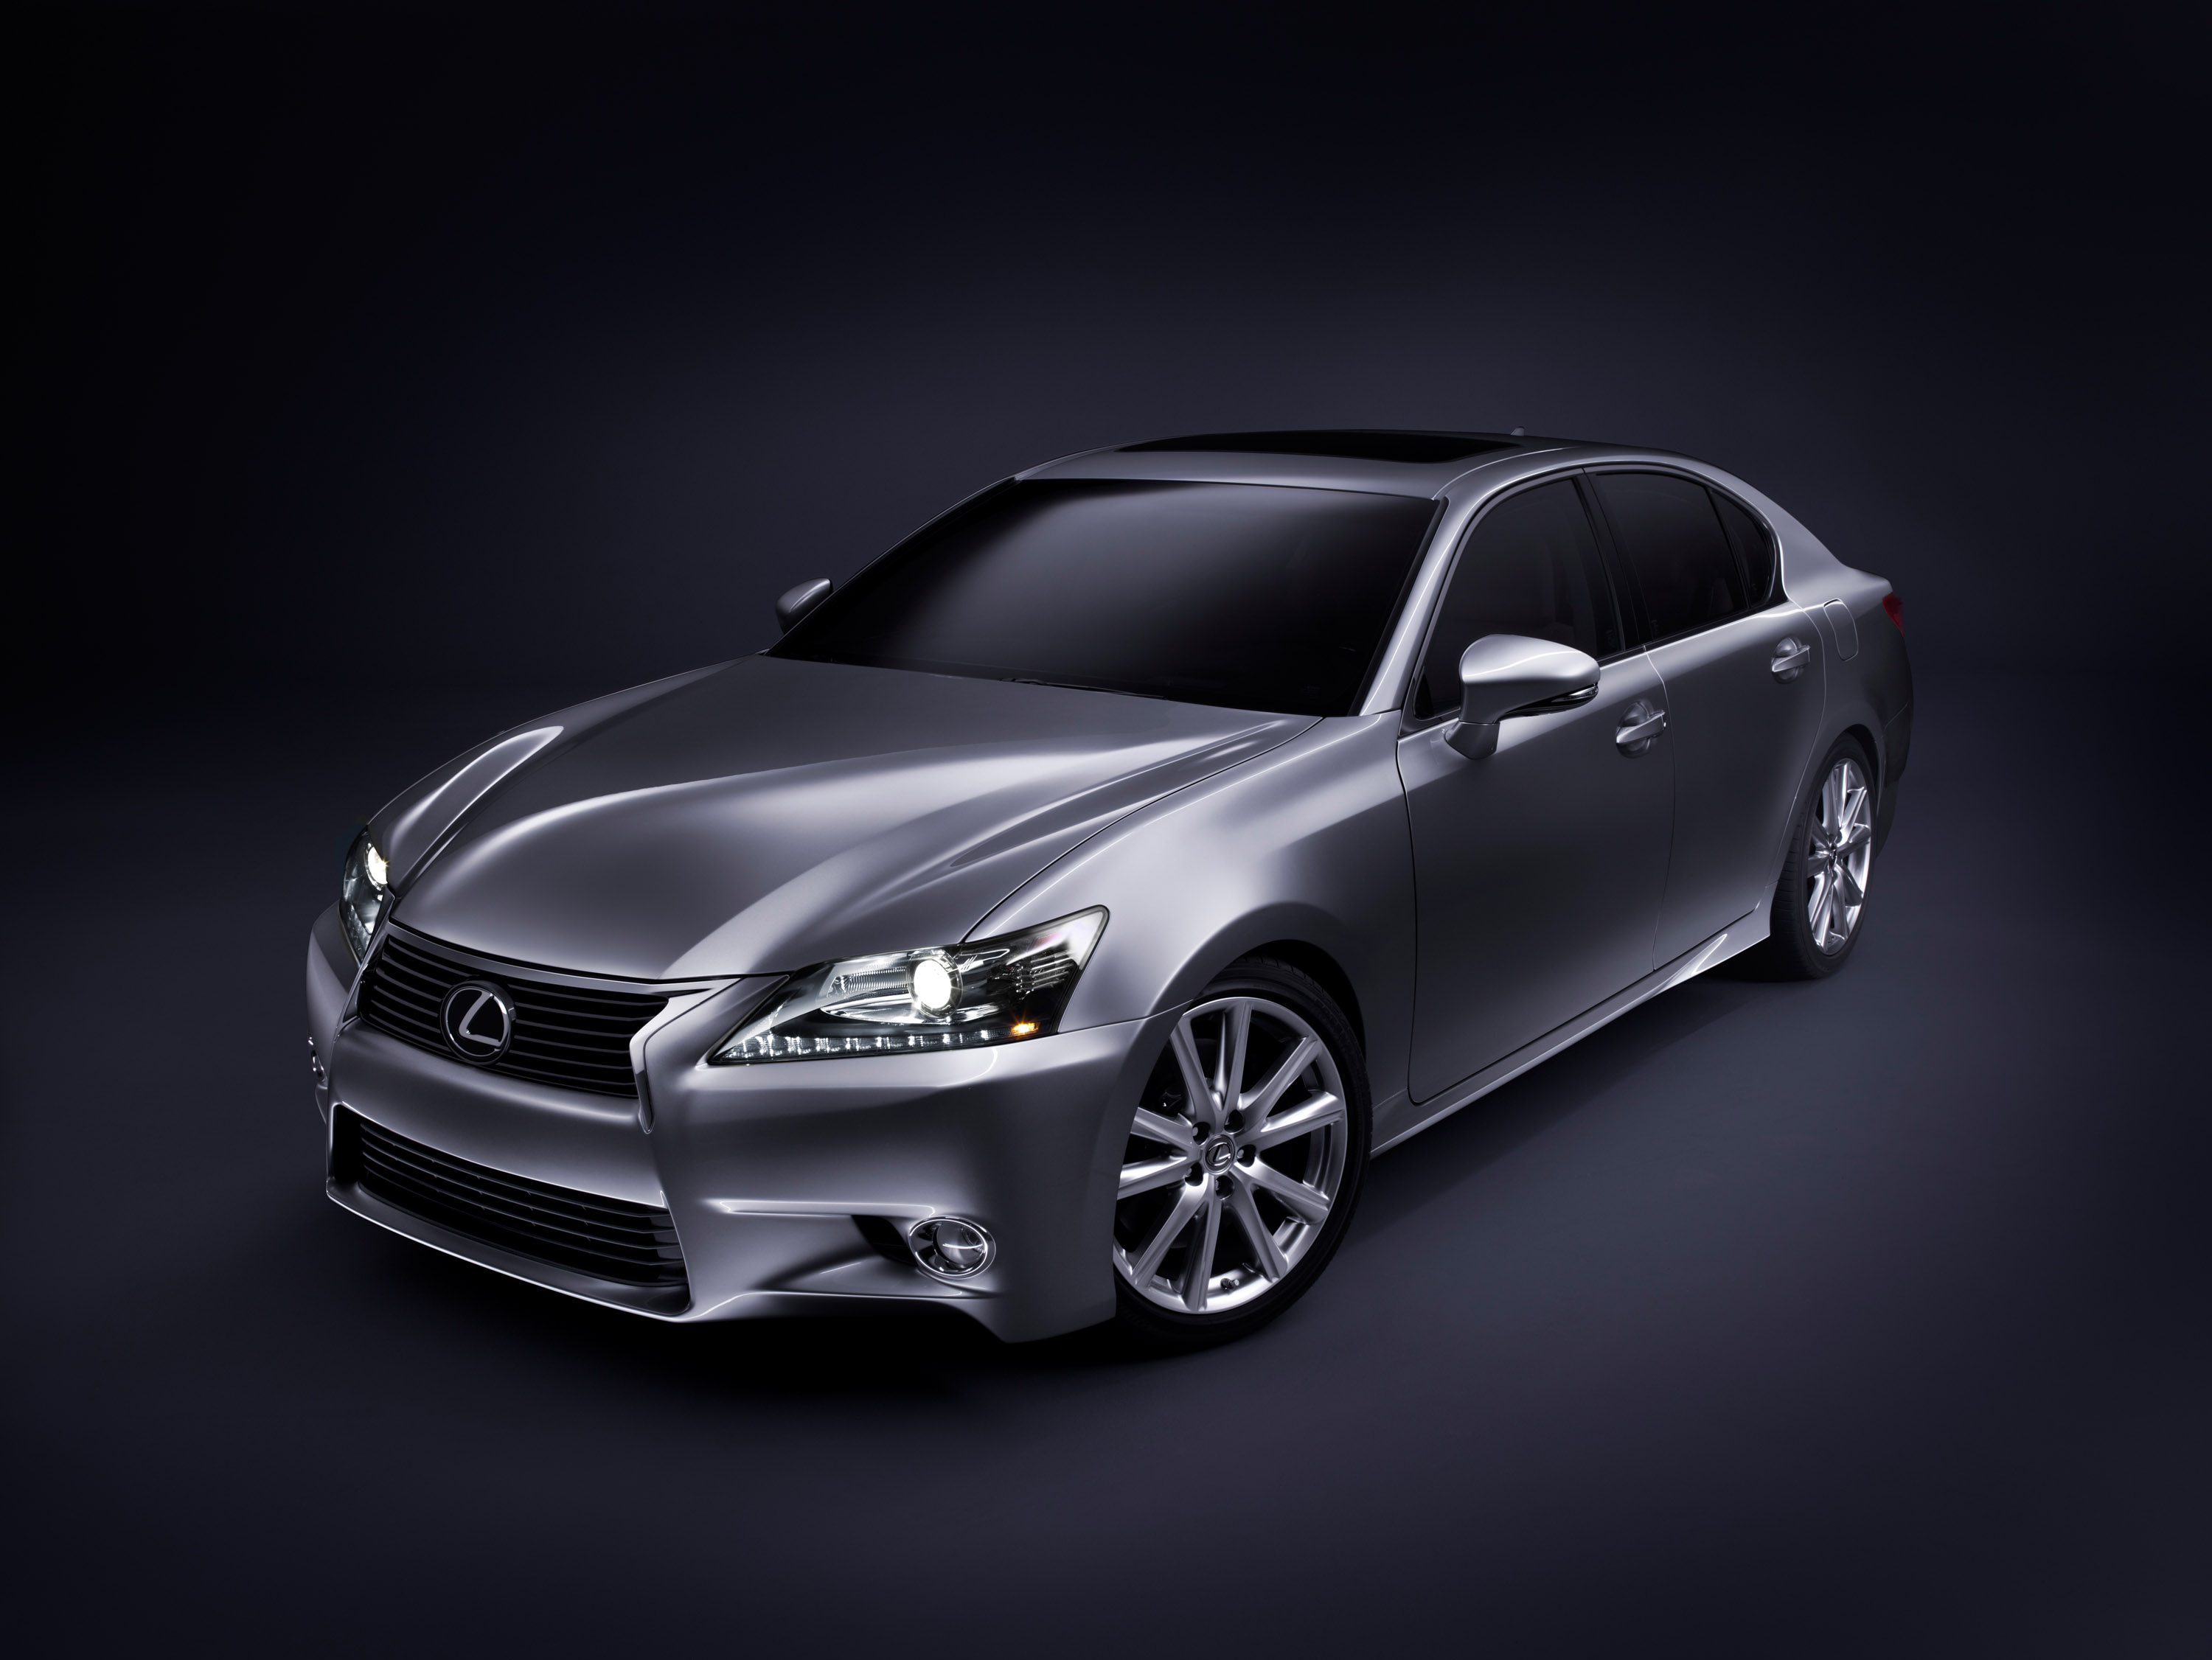 2014 lexus gs 350 review ratings specs prices and photos the car connection. Black Bedroom Furniture Sets. Home Design Ideas